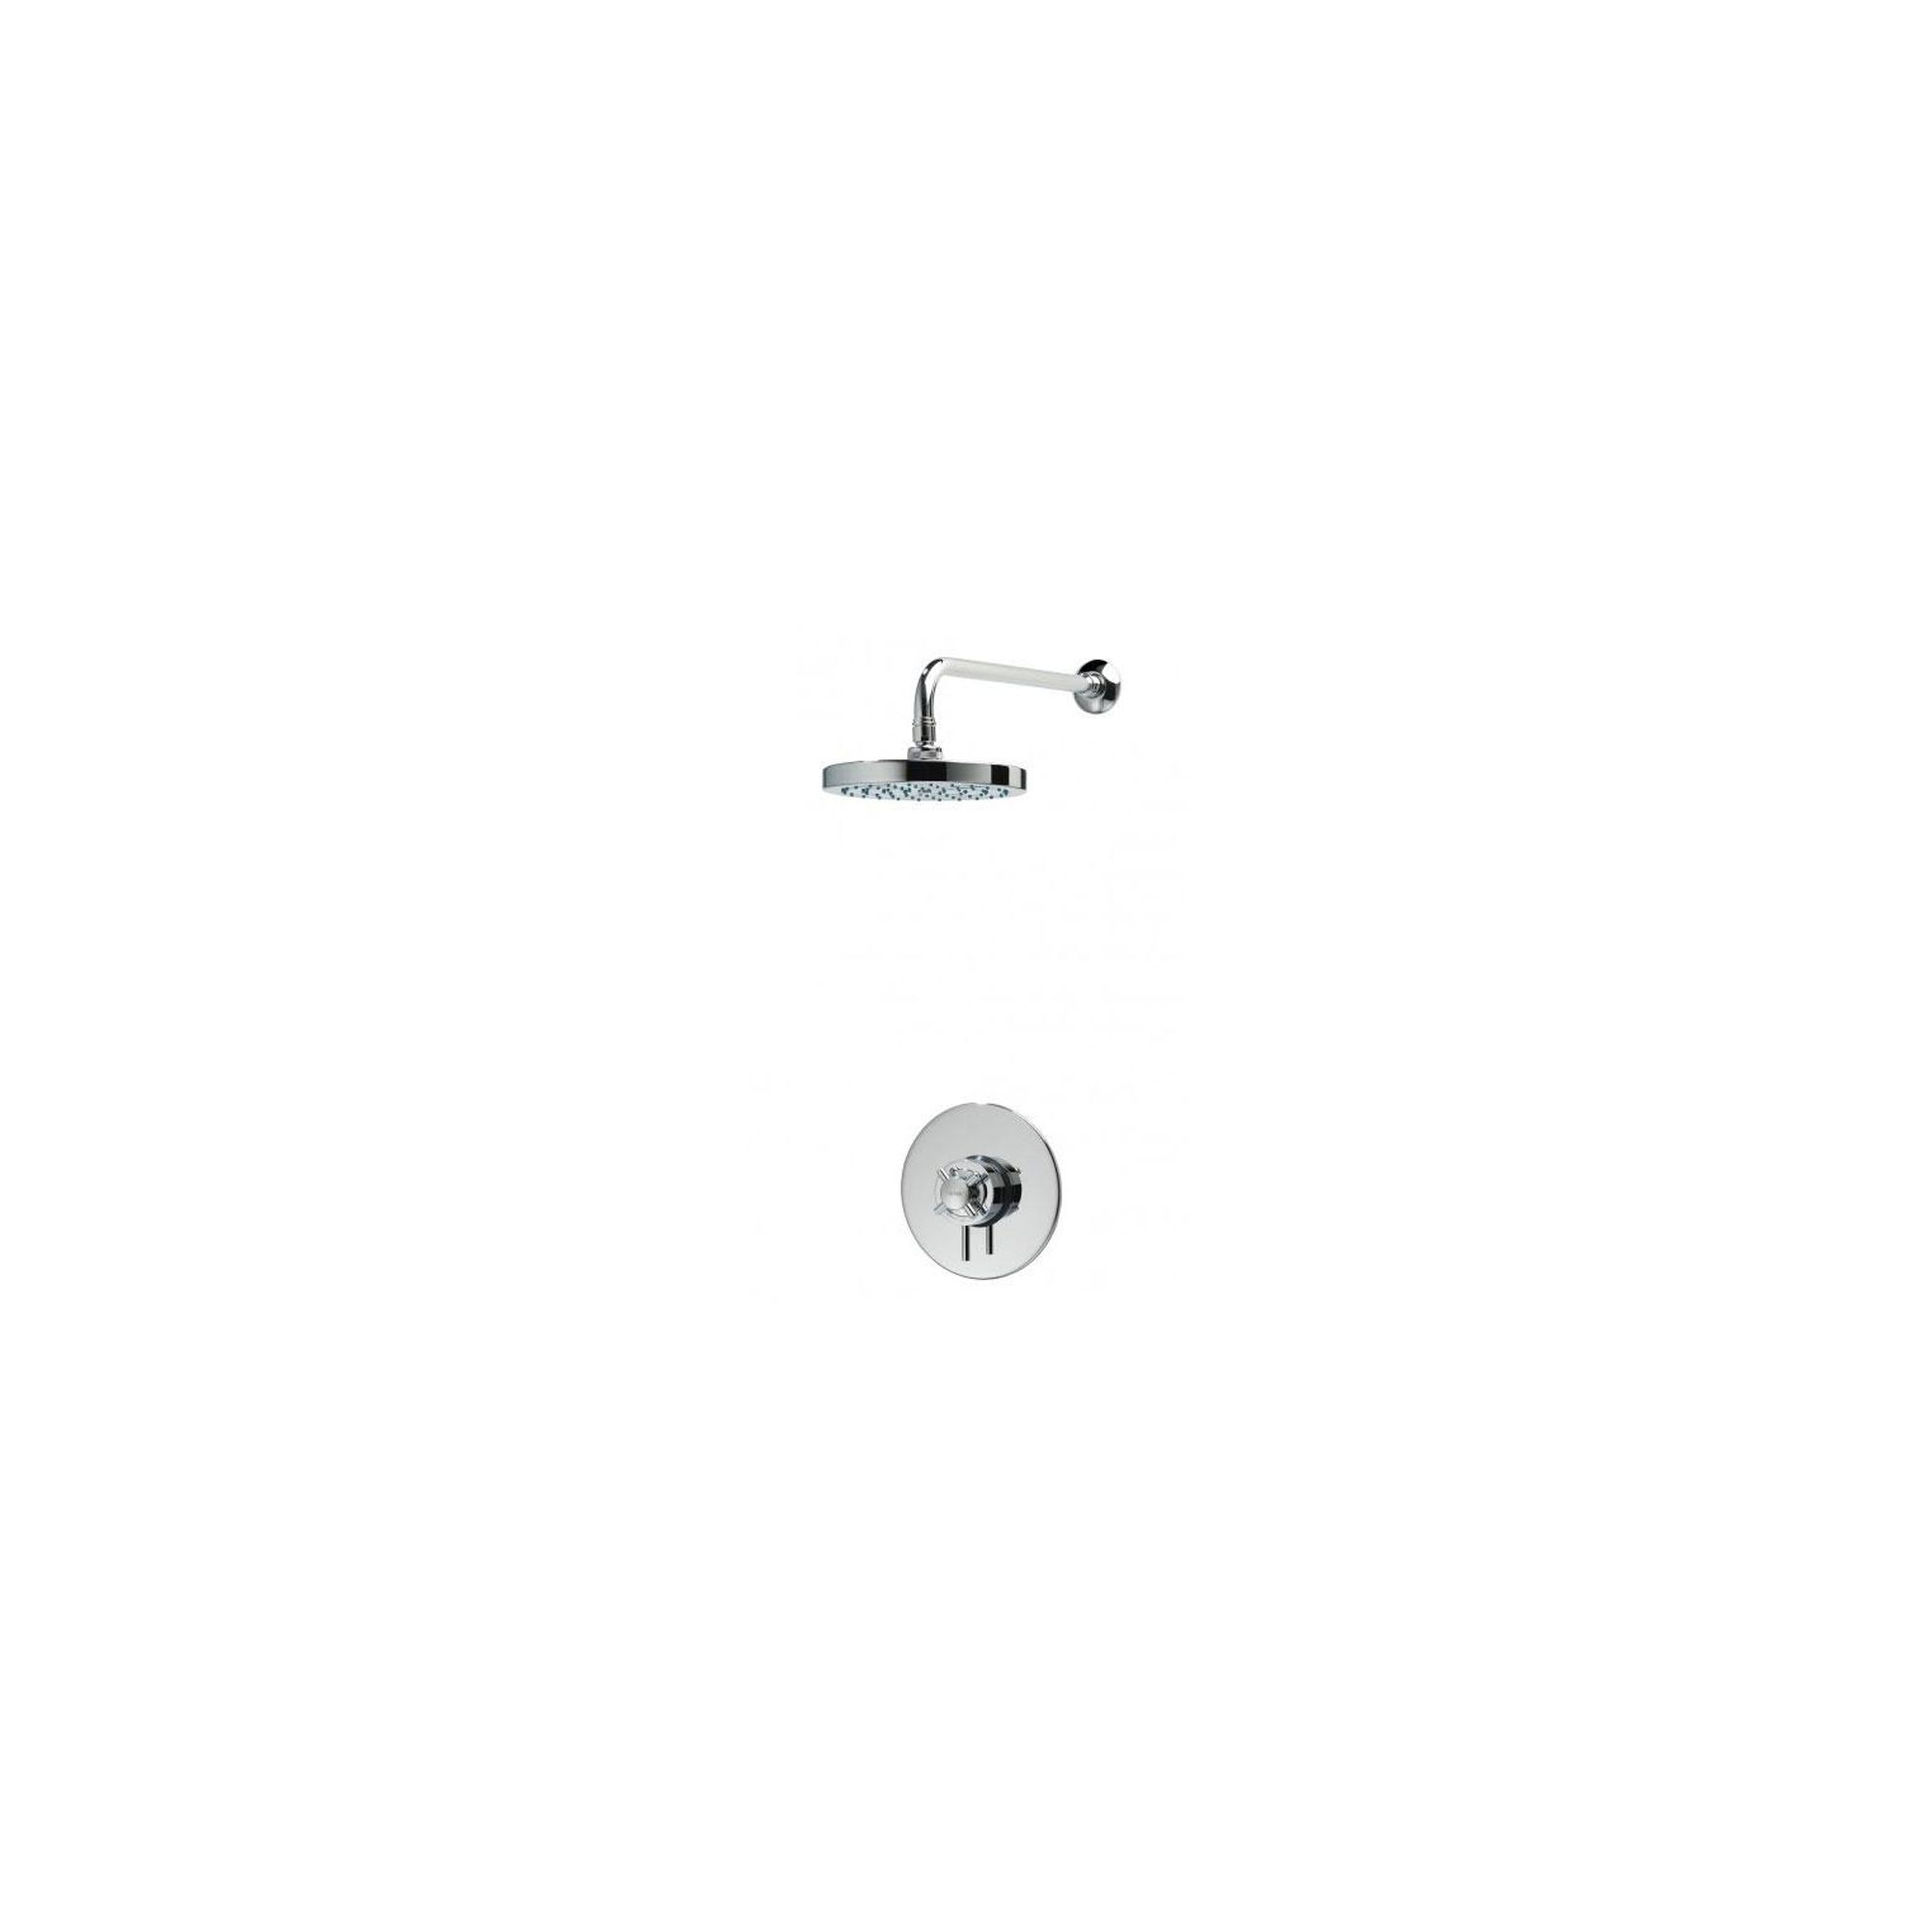 Triton Mersey Built-In Thermostatic Mixer with Fixed Head Chrome at Tesco Direct